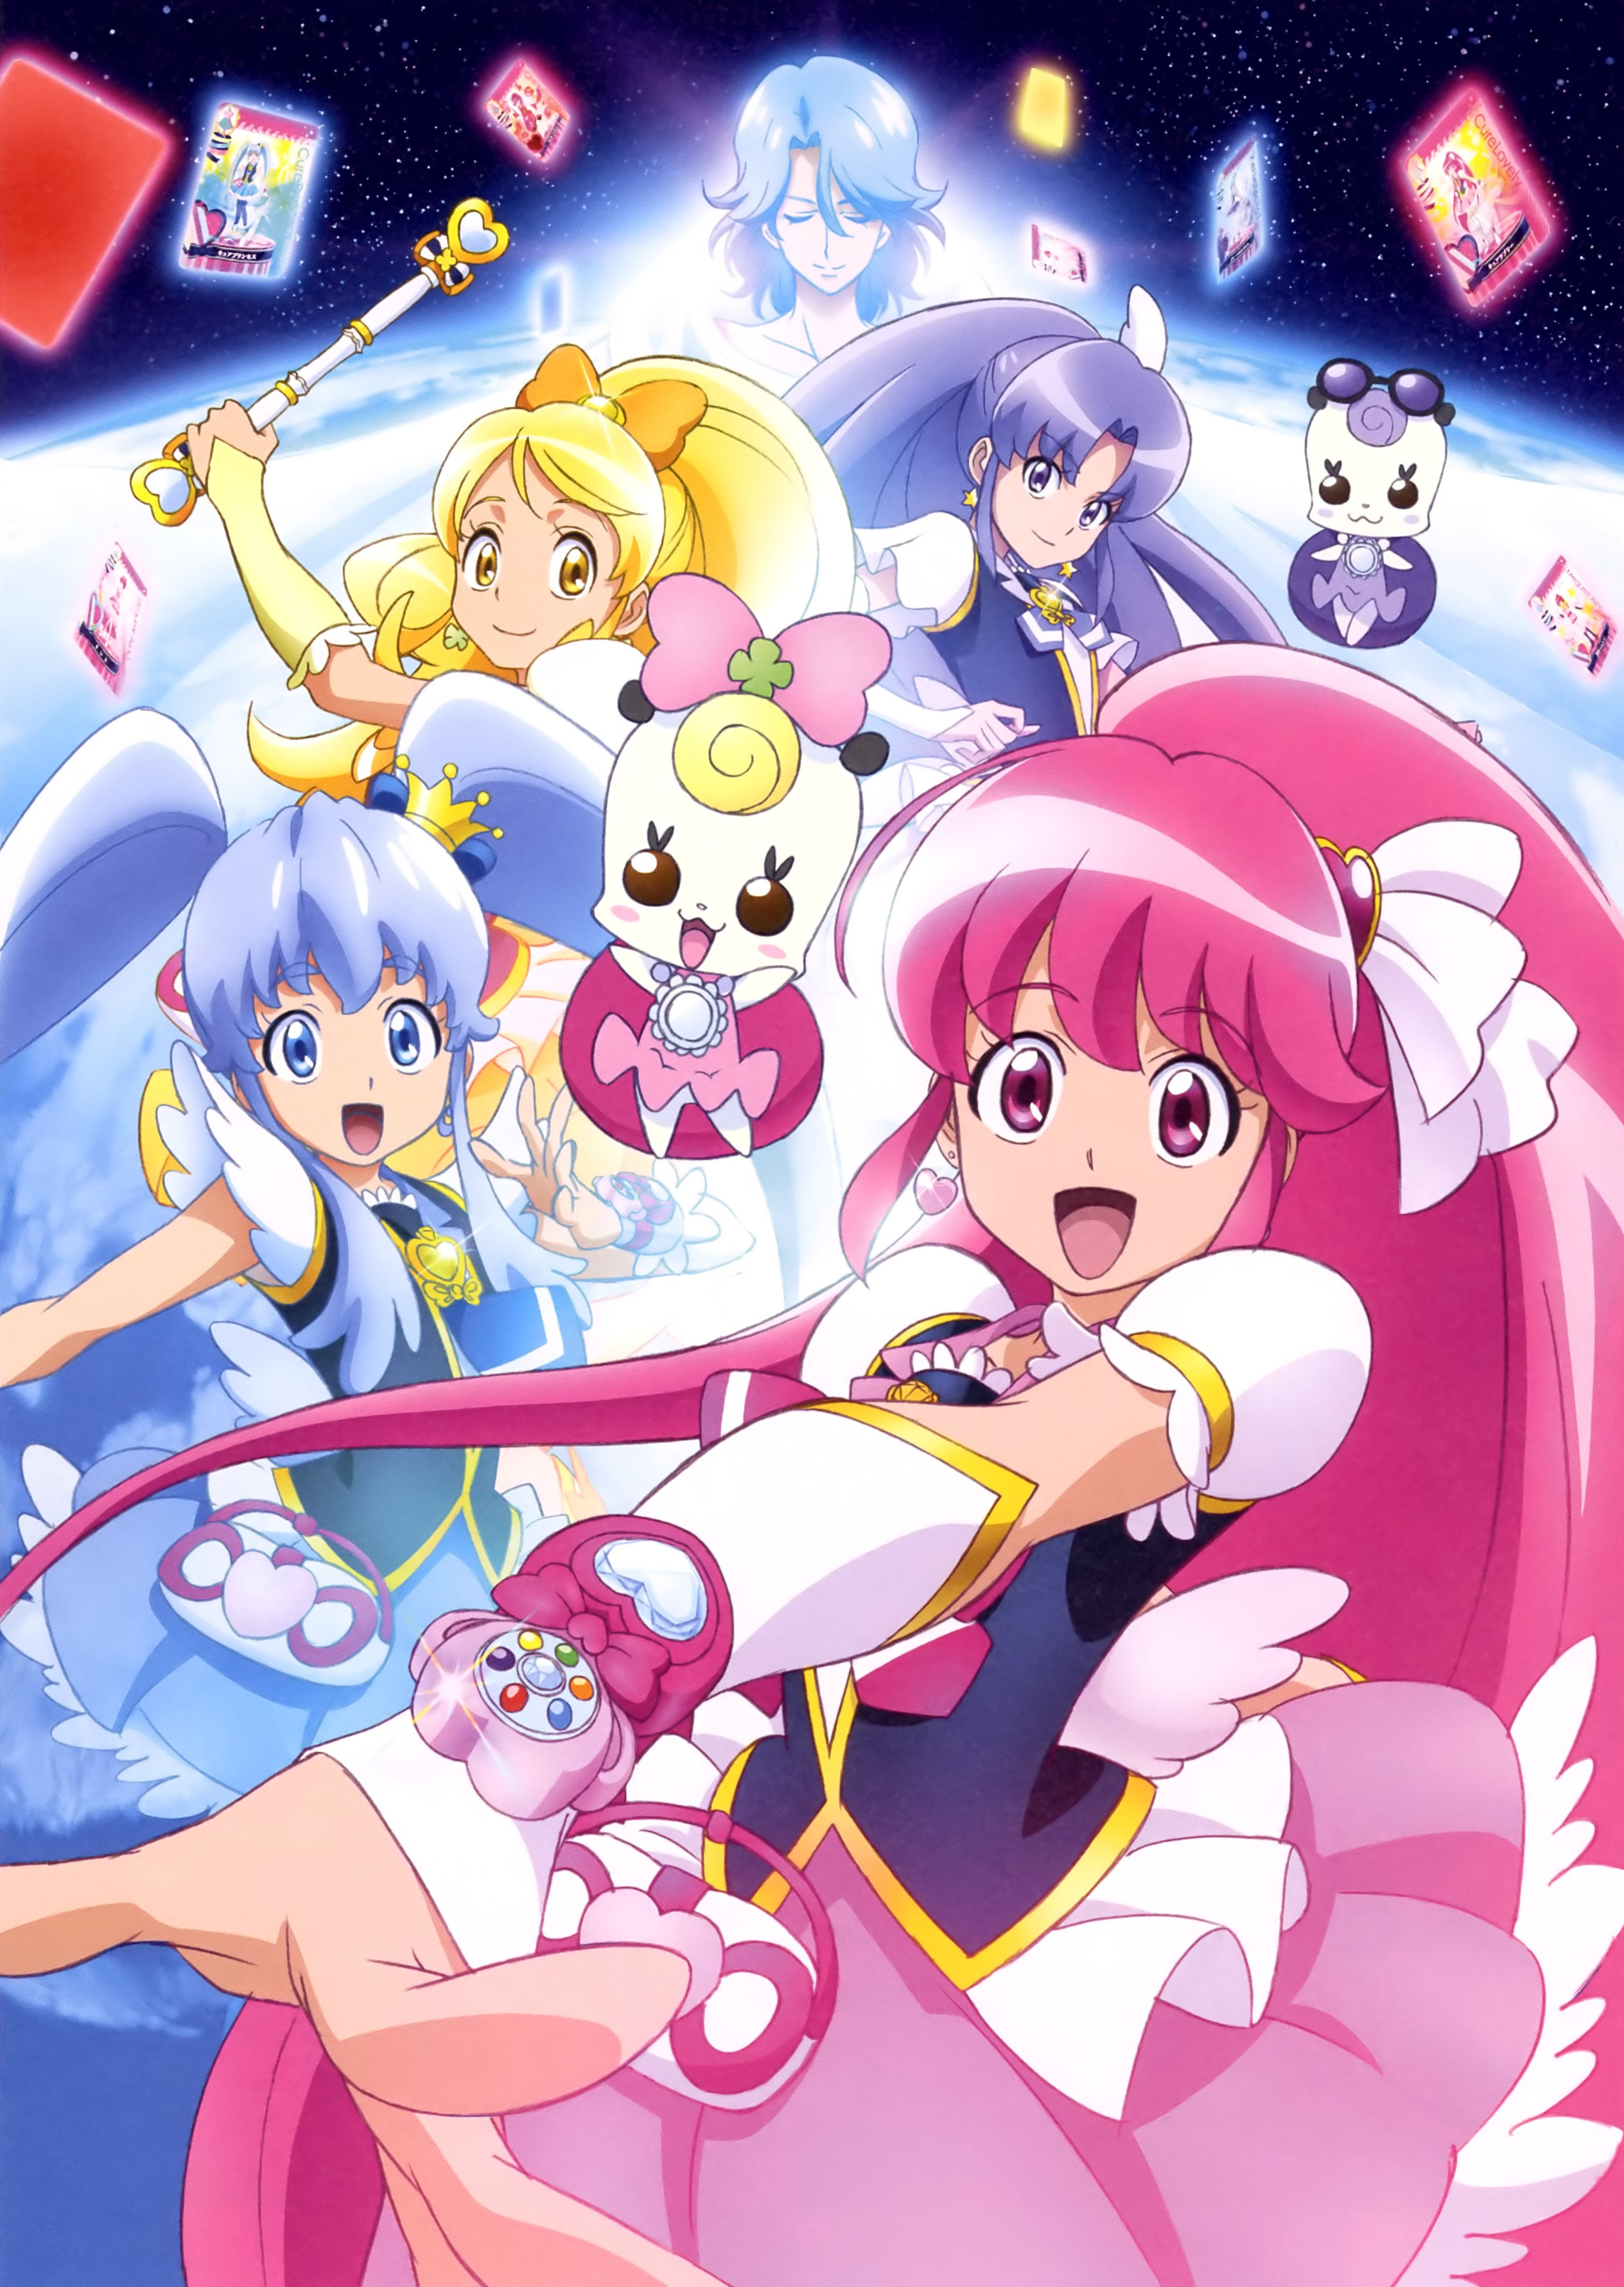 http://static4.wikia.nocookie.net/__cb20131225234527/prettycure/images/b/bc/HappinessChargePrettyCurePromo.jpg